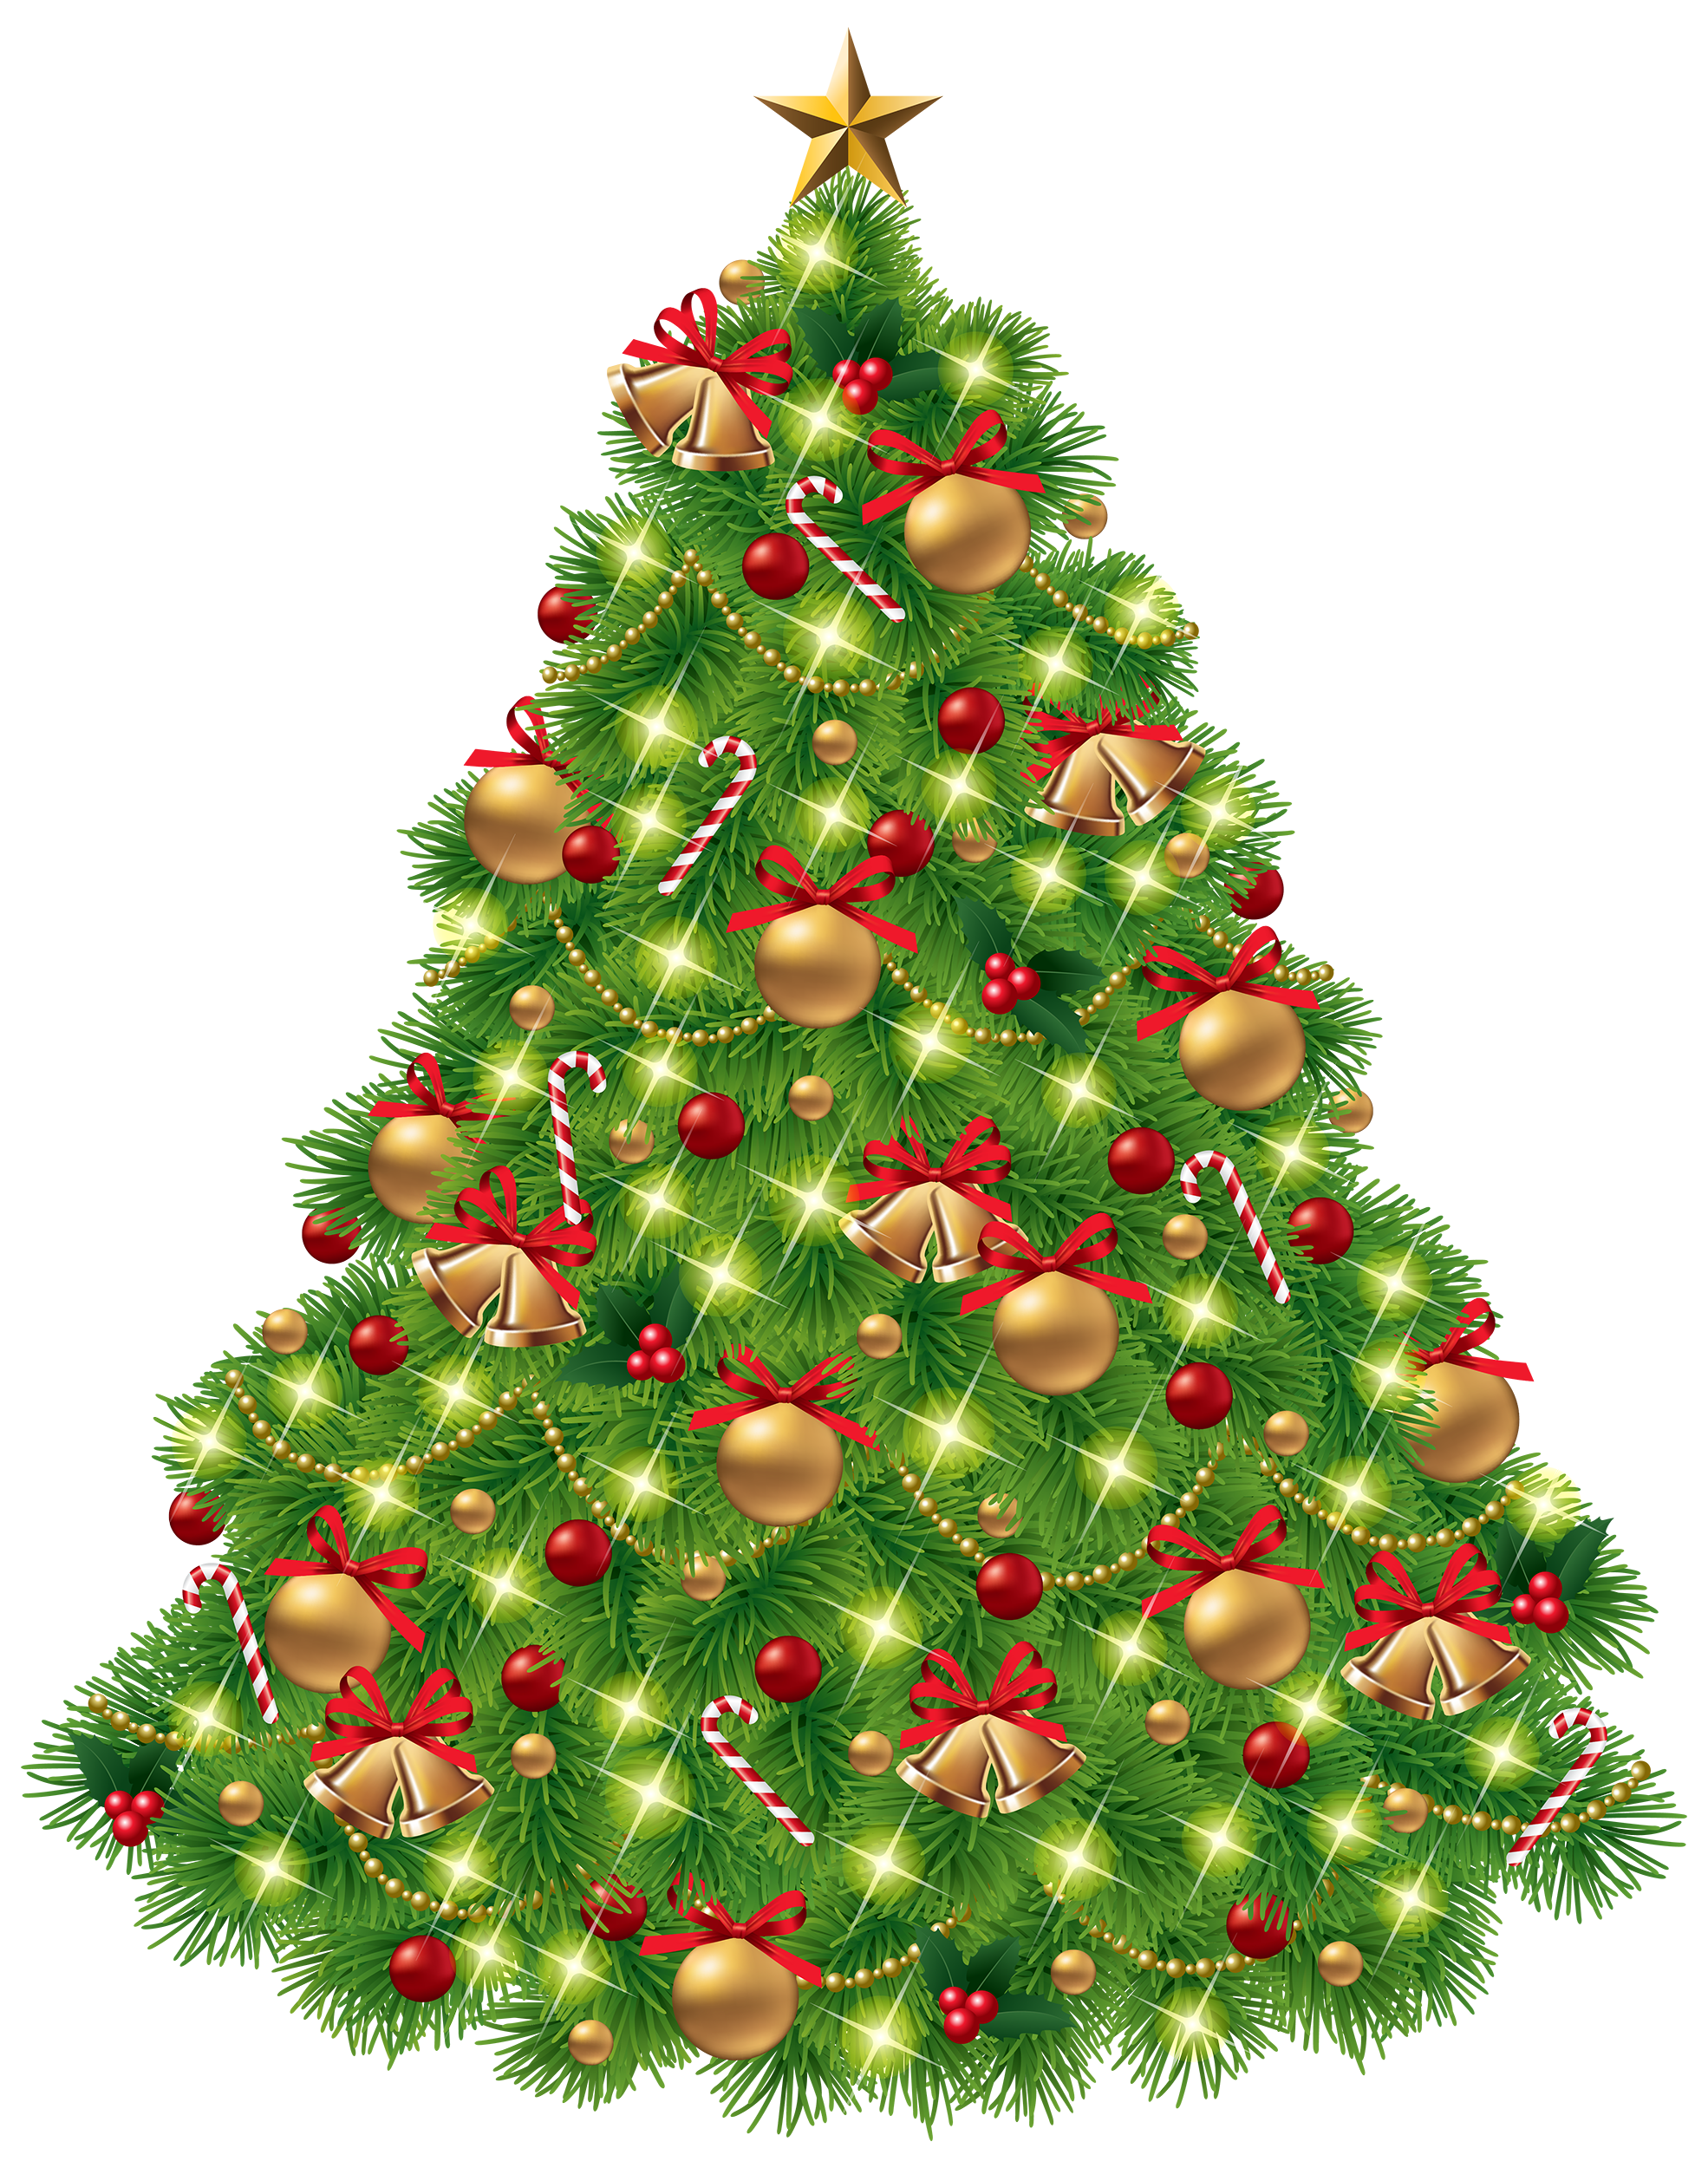 Christmas clipart png transparent download Christmas Tree PNG Clipart - Best WEB Clipart transparent download